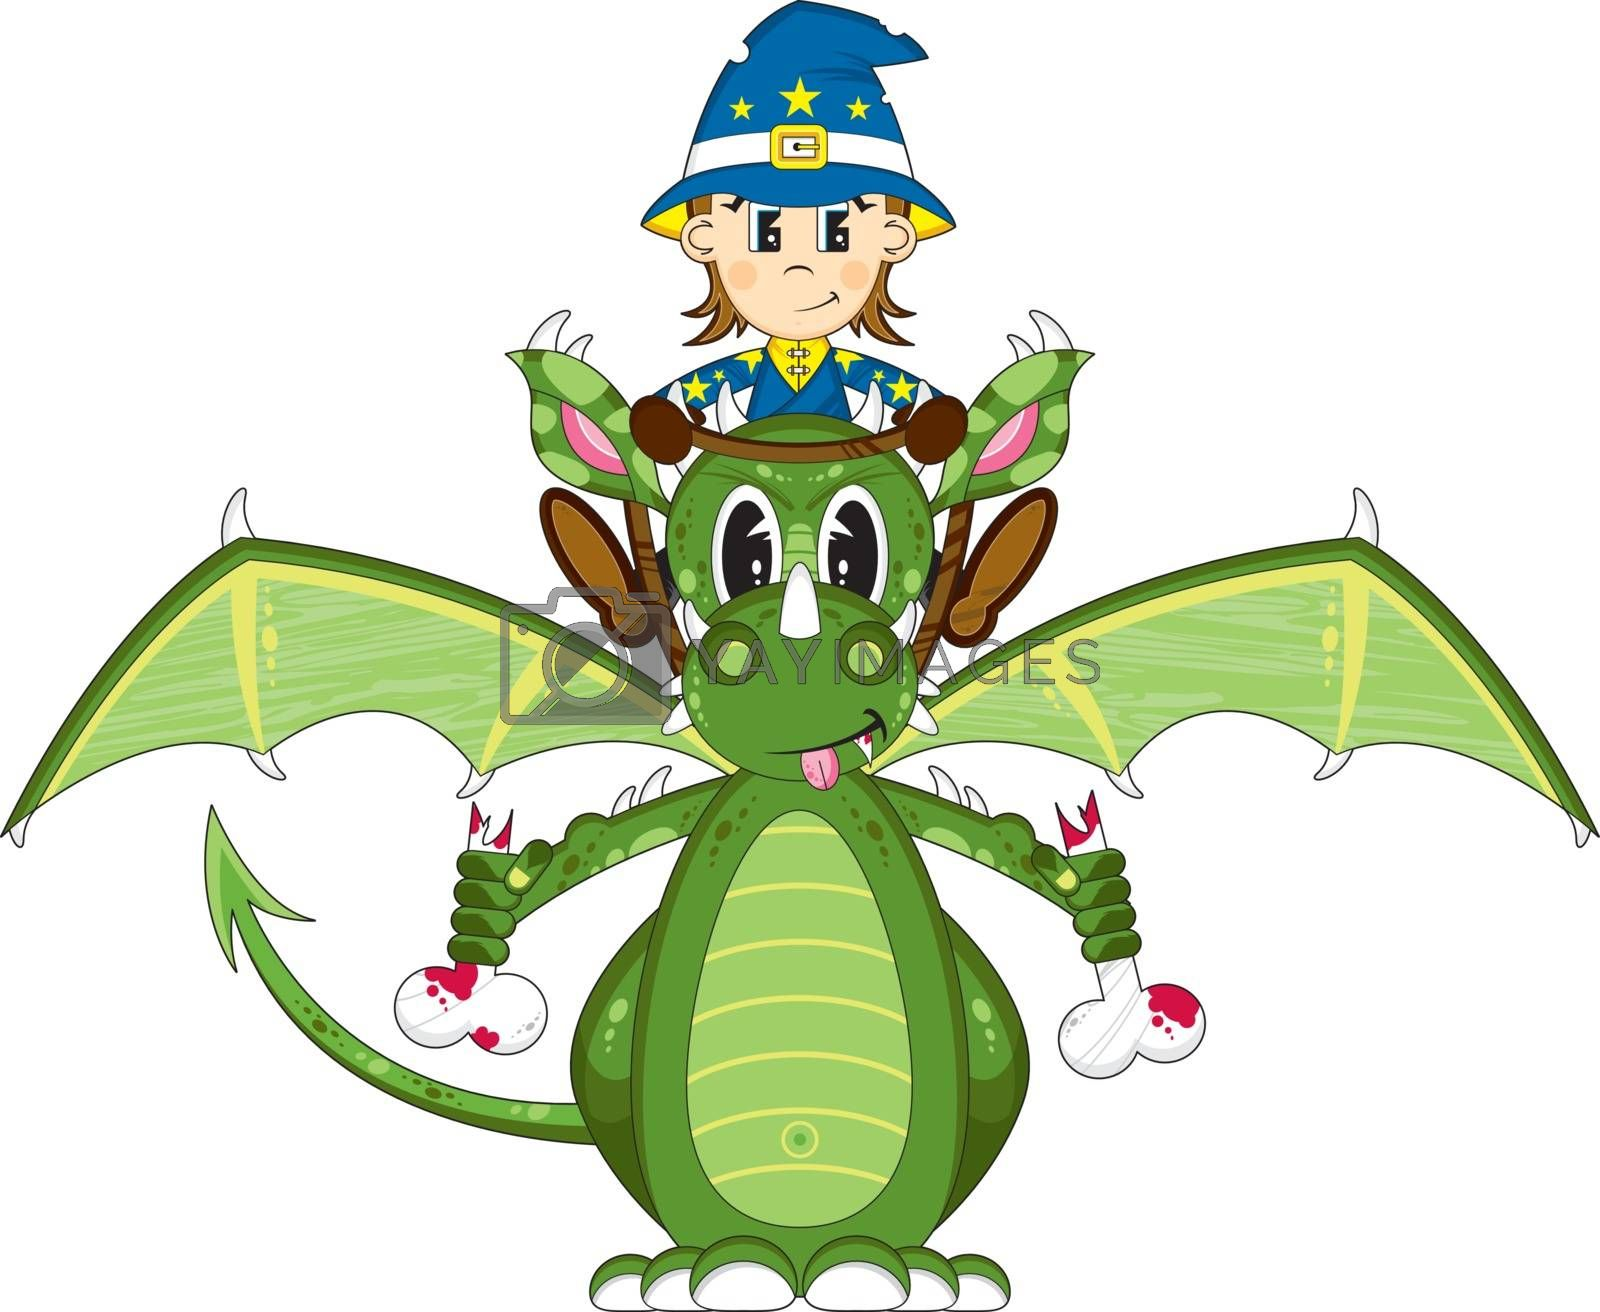 Cartoon Wizard with Dragon - Vector Illustration - By Mark Murphy Creative